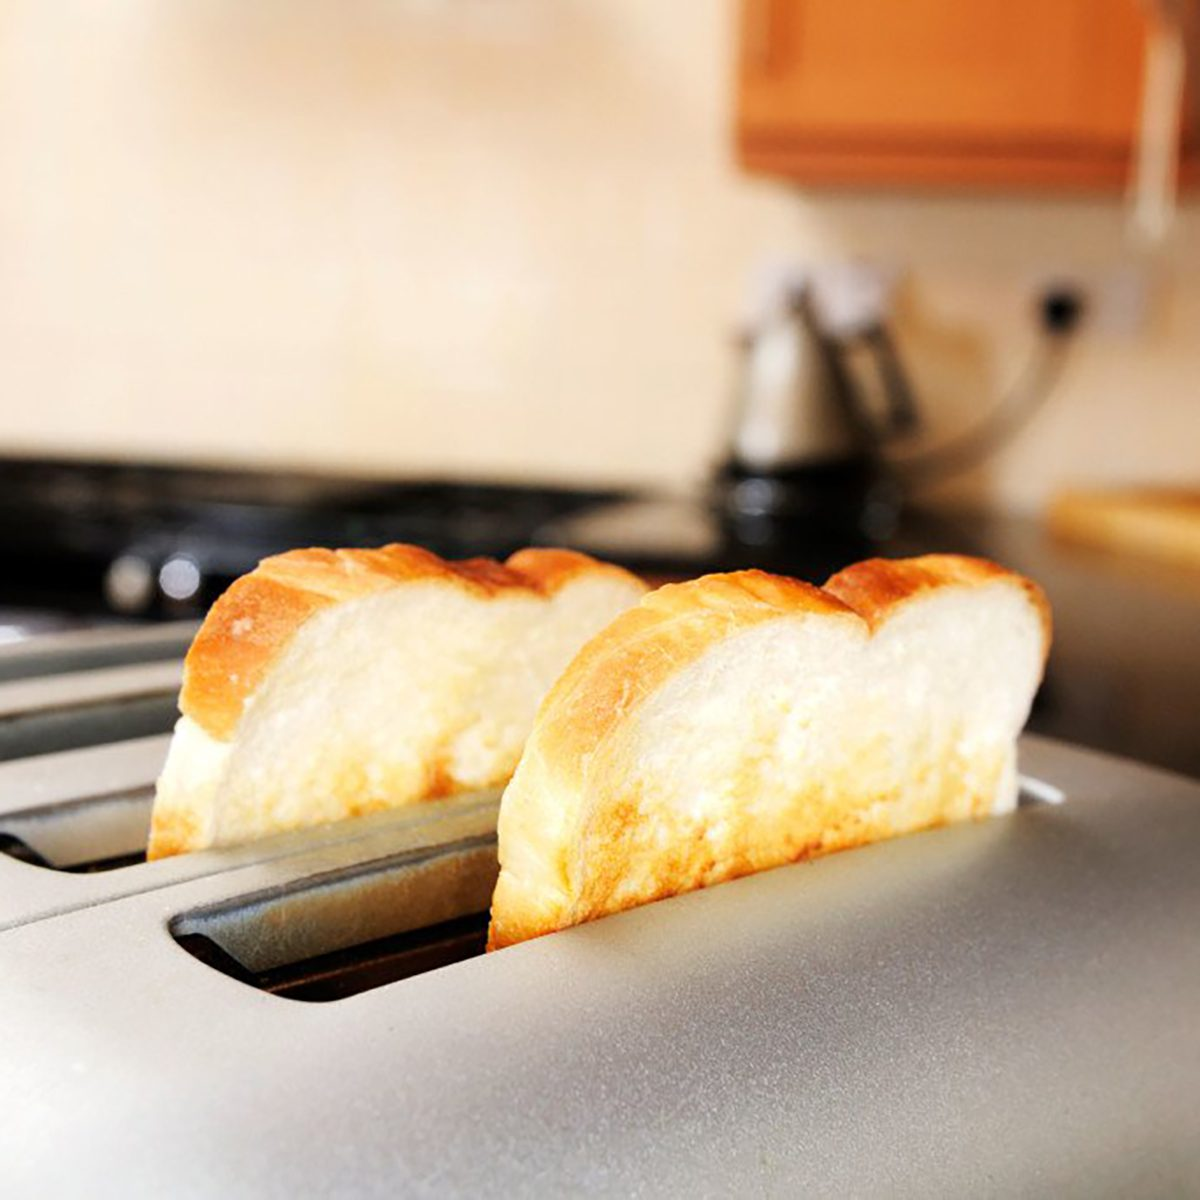 bread popping up from toaster